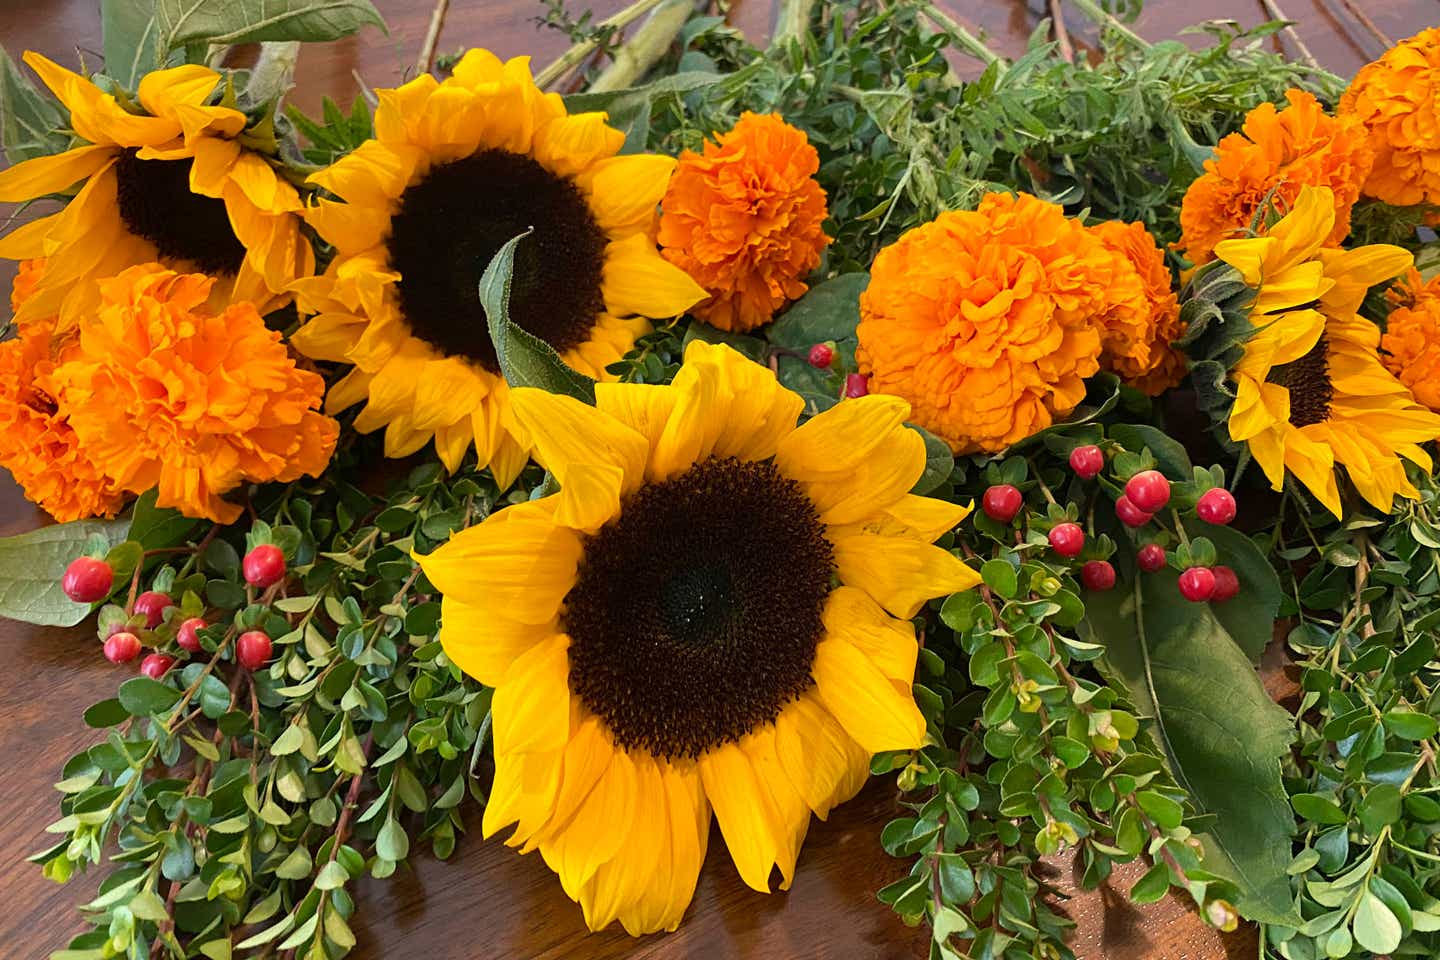 Seasonal floral arrangement featuring sunflowers, marigolds and holly branches are spread across a kitchen table top.